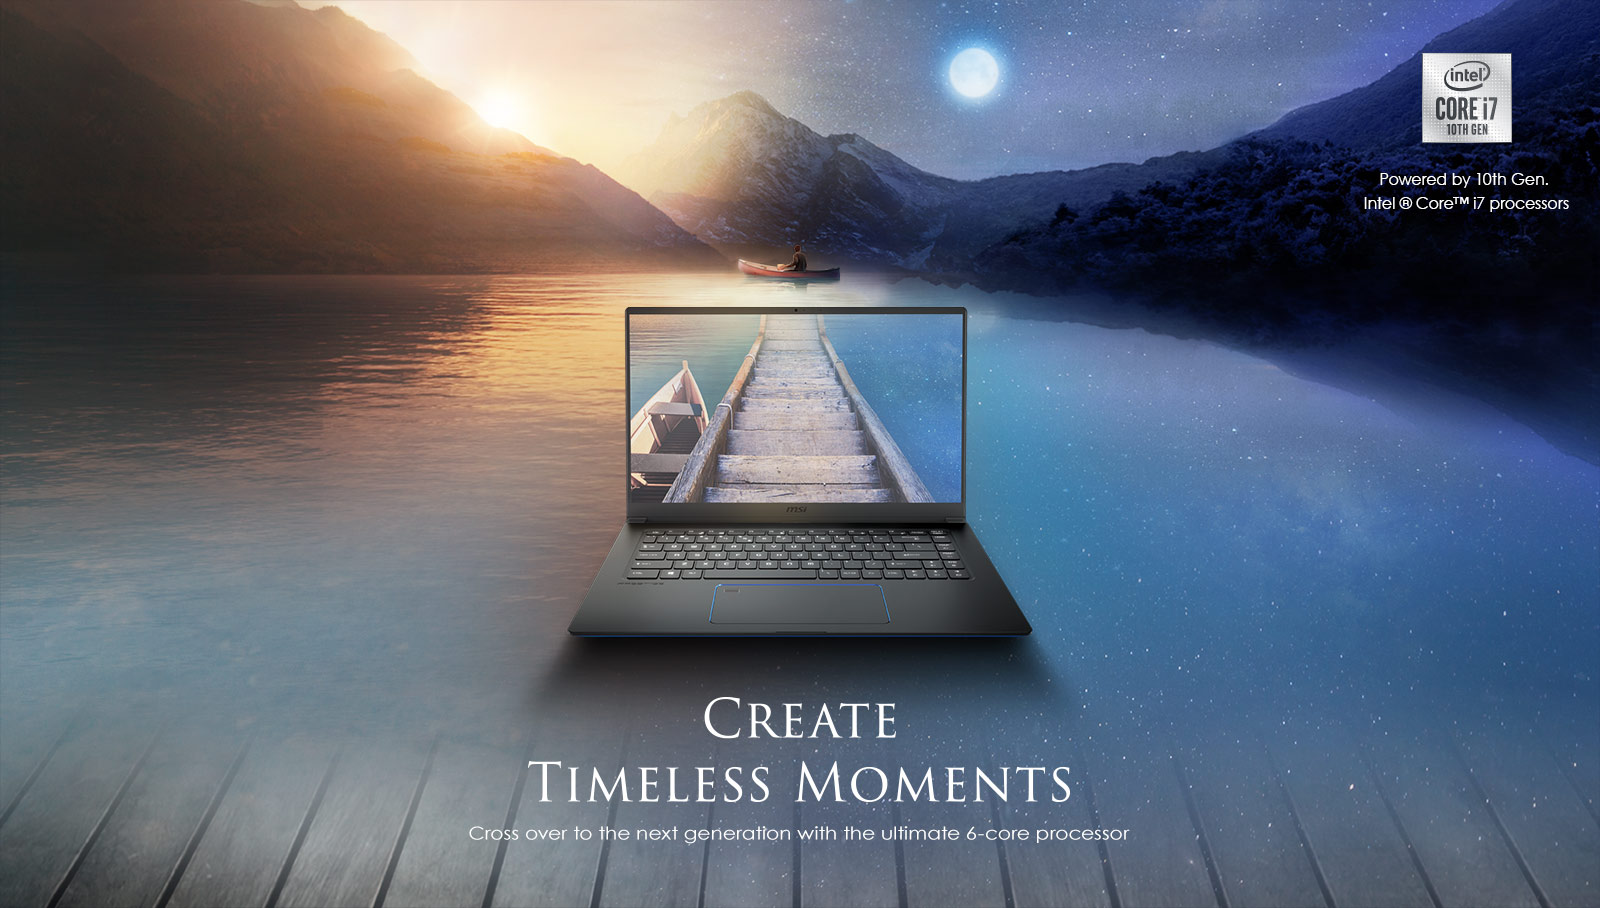 MSI Prestige 15 Lie on the Center. Background Fills in the Landscape of Sunset and Night Combination. Right Top There's Intel Core i7 10th Gen's logo. The Text on Image Reads: CREATE TIMELESS MOMENTS - Cross Over the Next Generation with the Ultimate 6-core Processor.